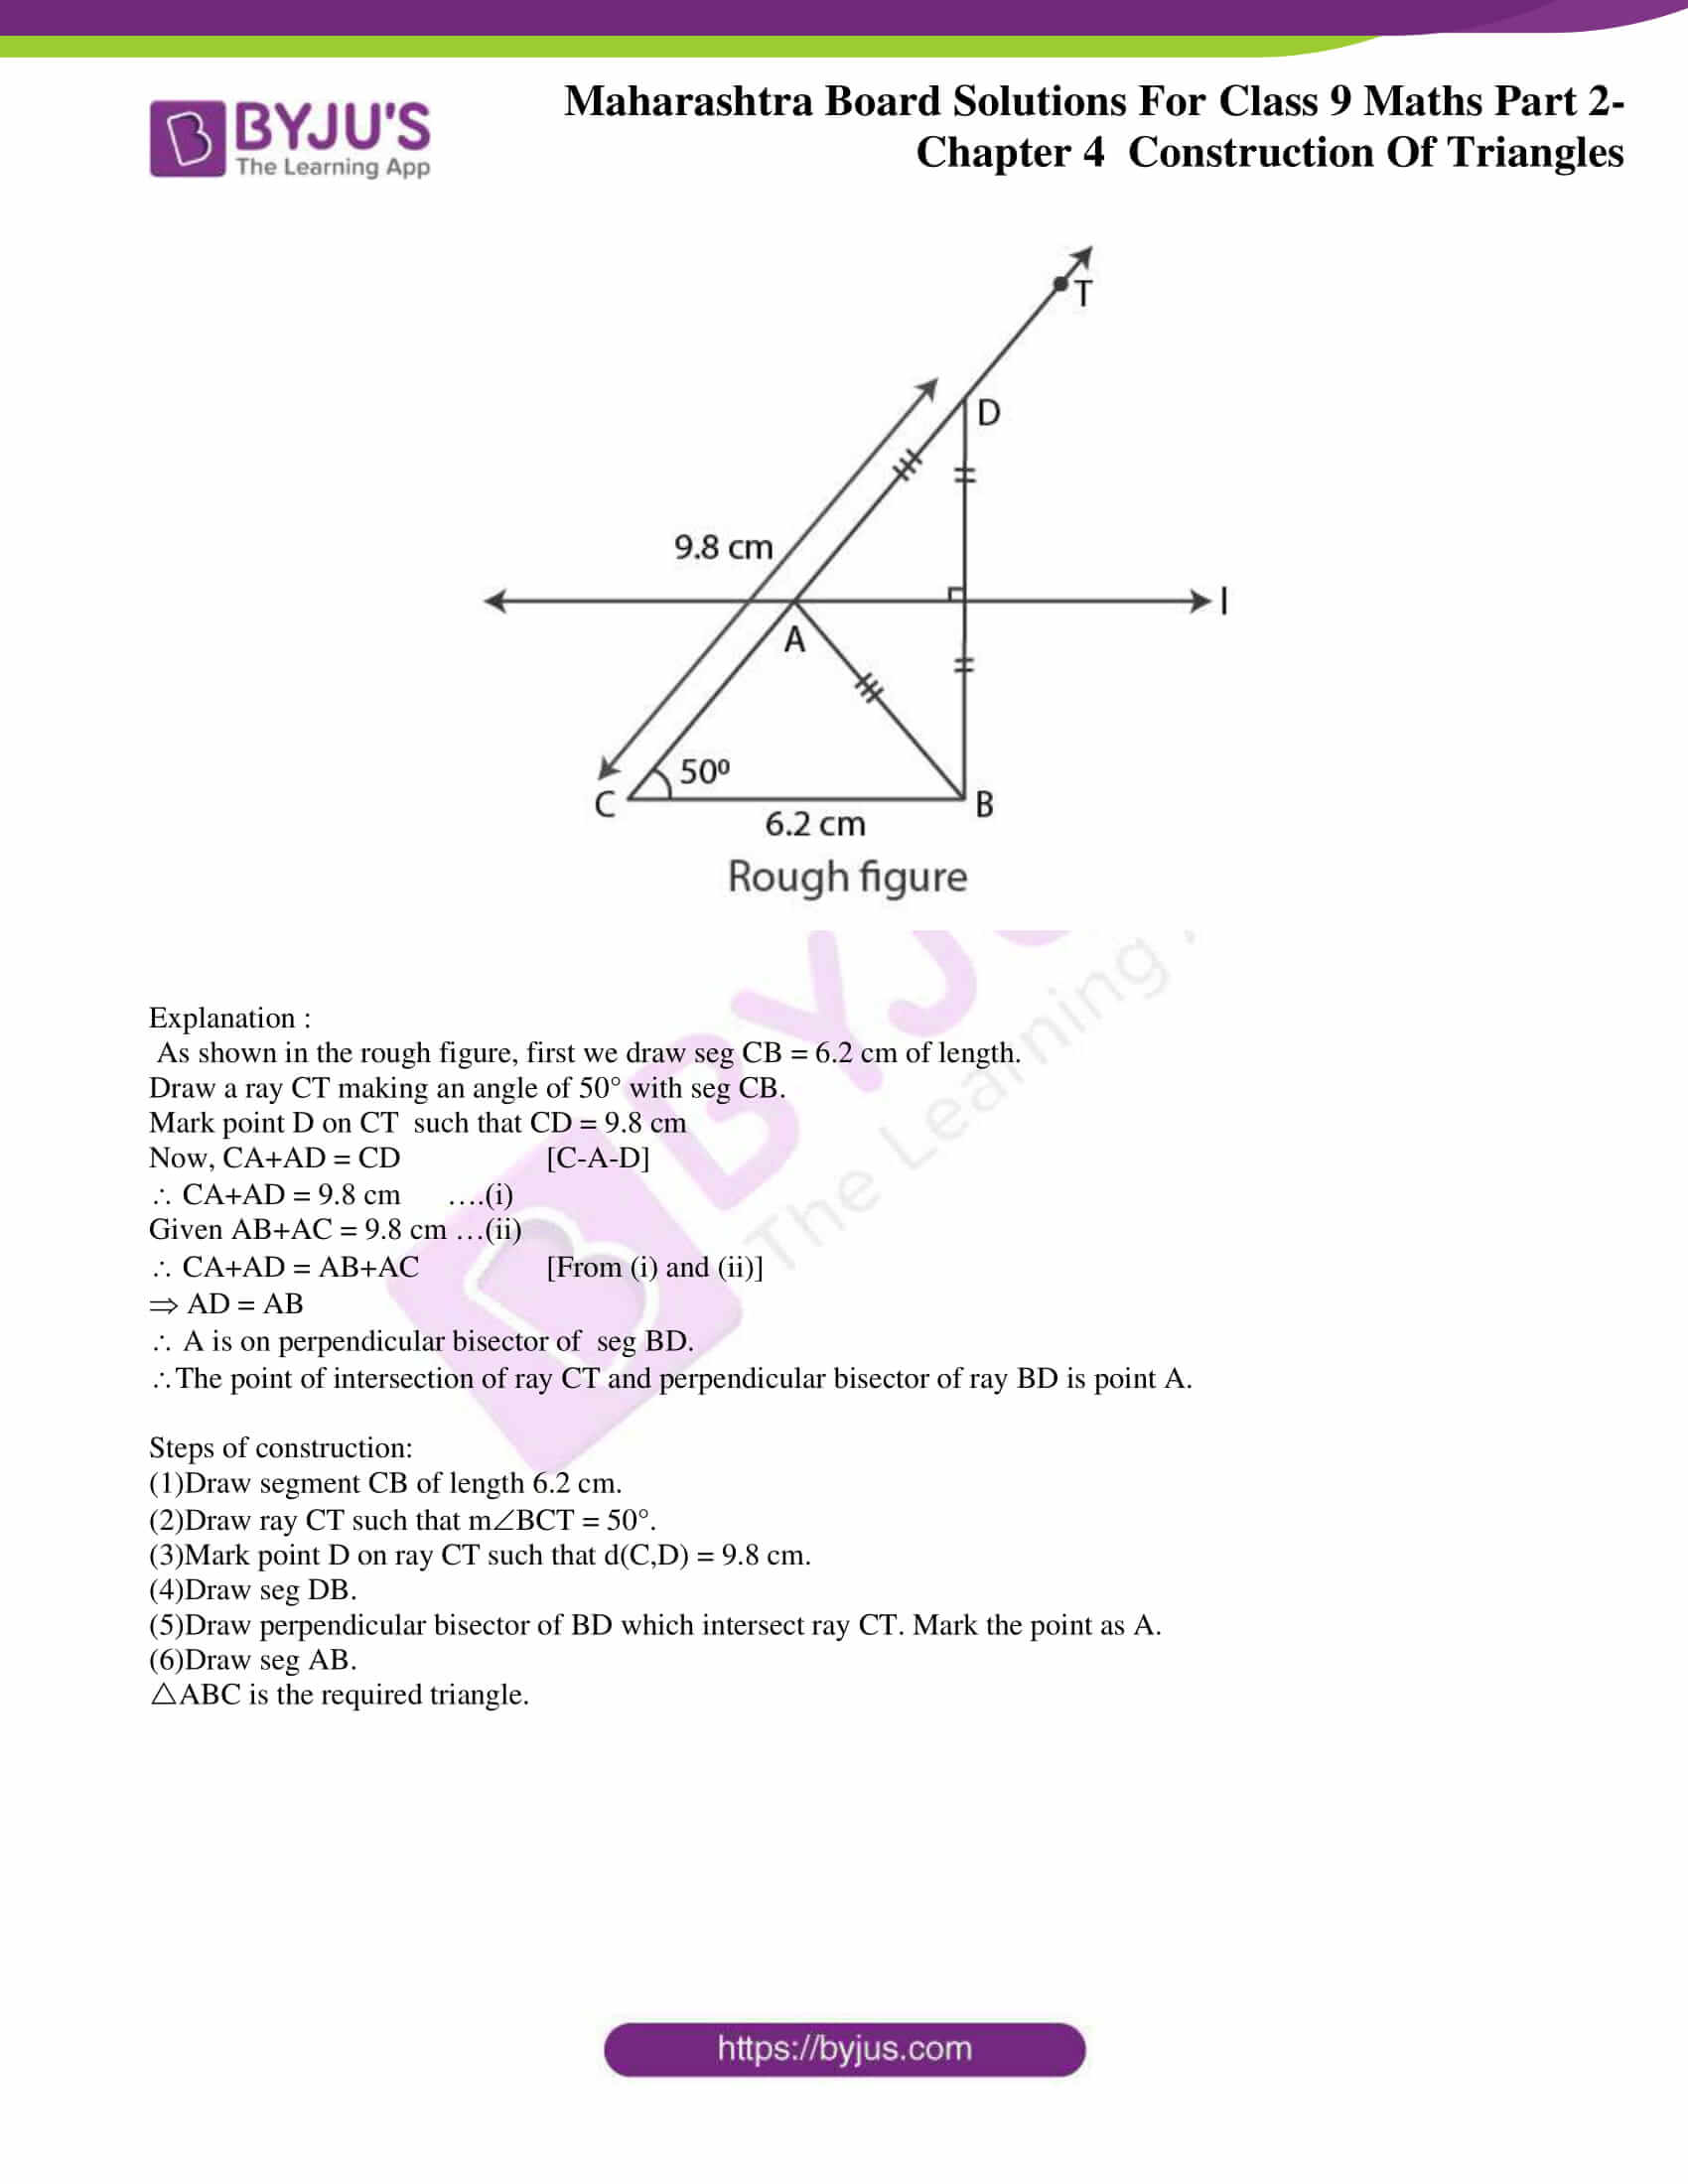 msbshse solutions for class 9 maths part 2 chapter 4 04